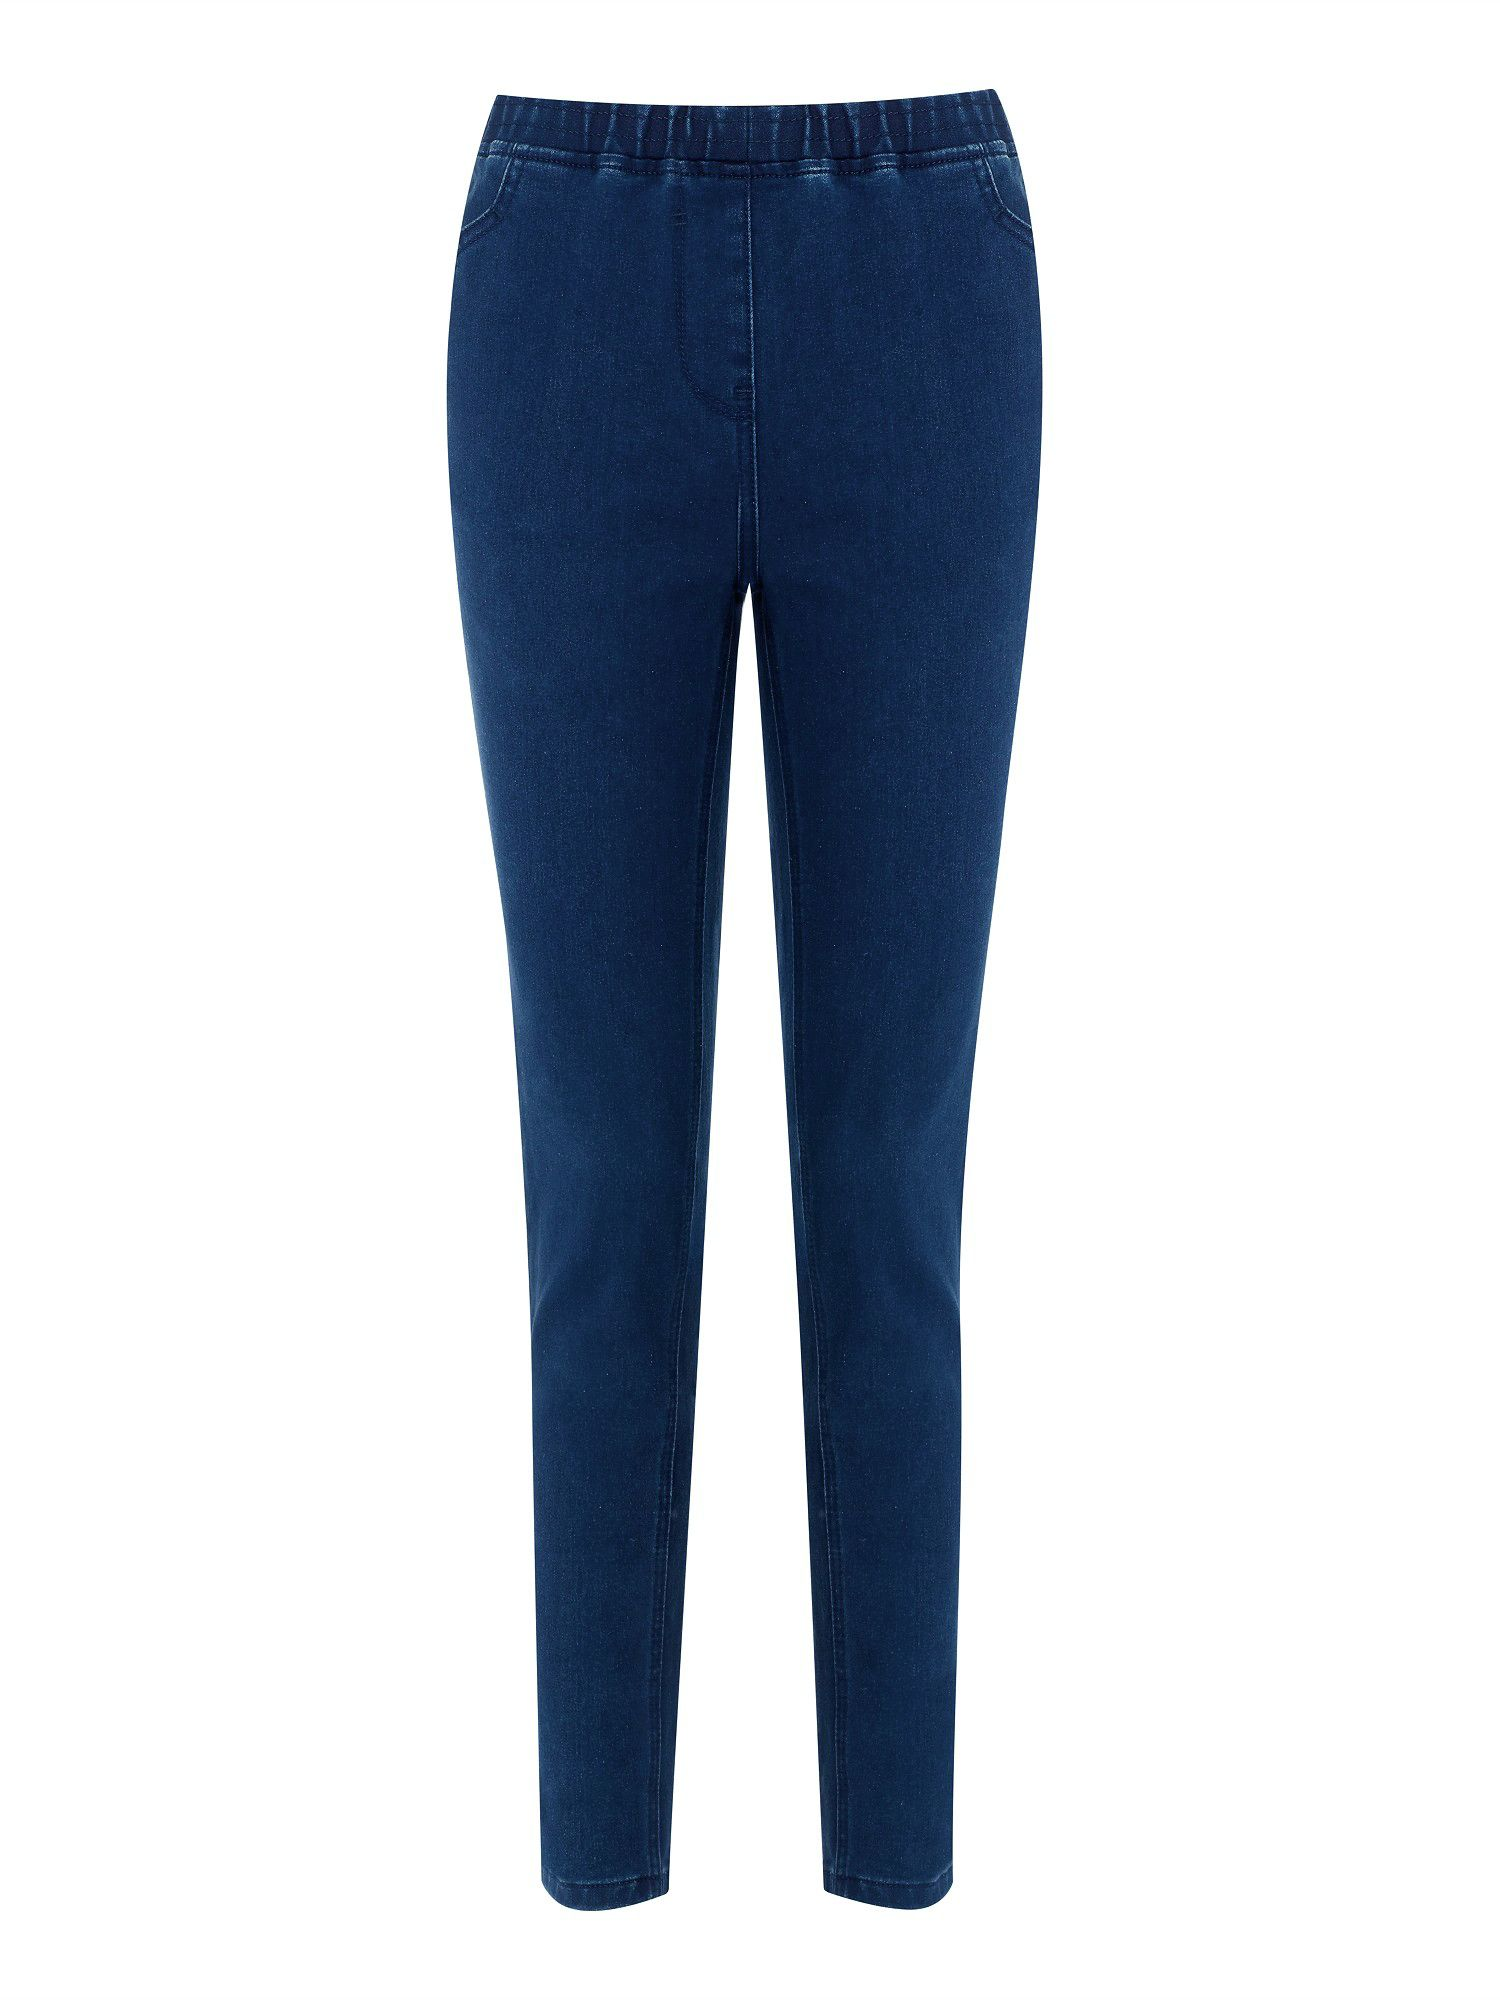 Mid wash denim jeggings petite